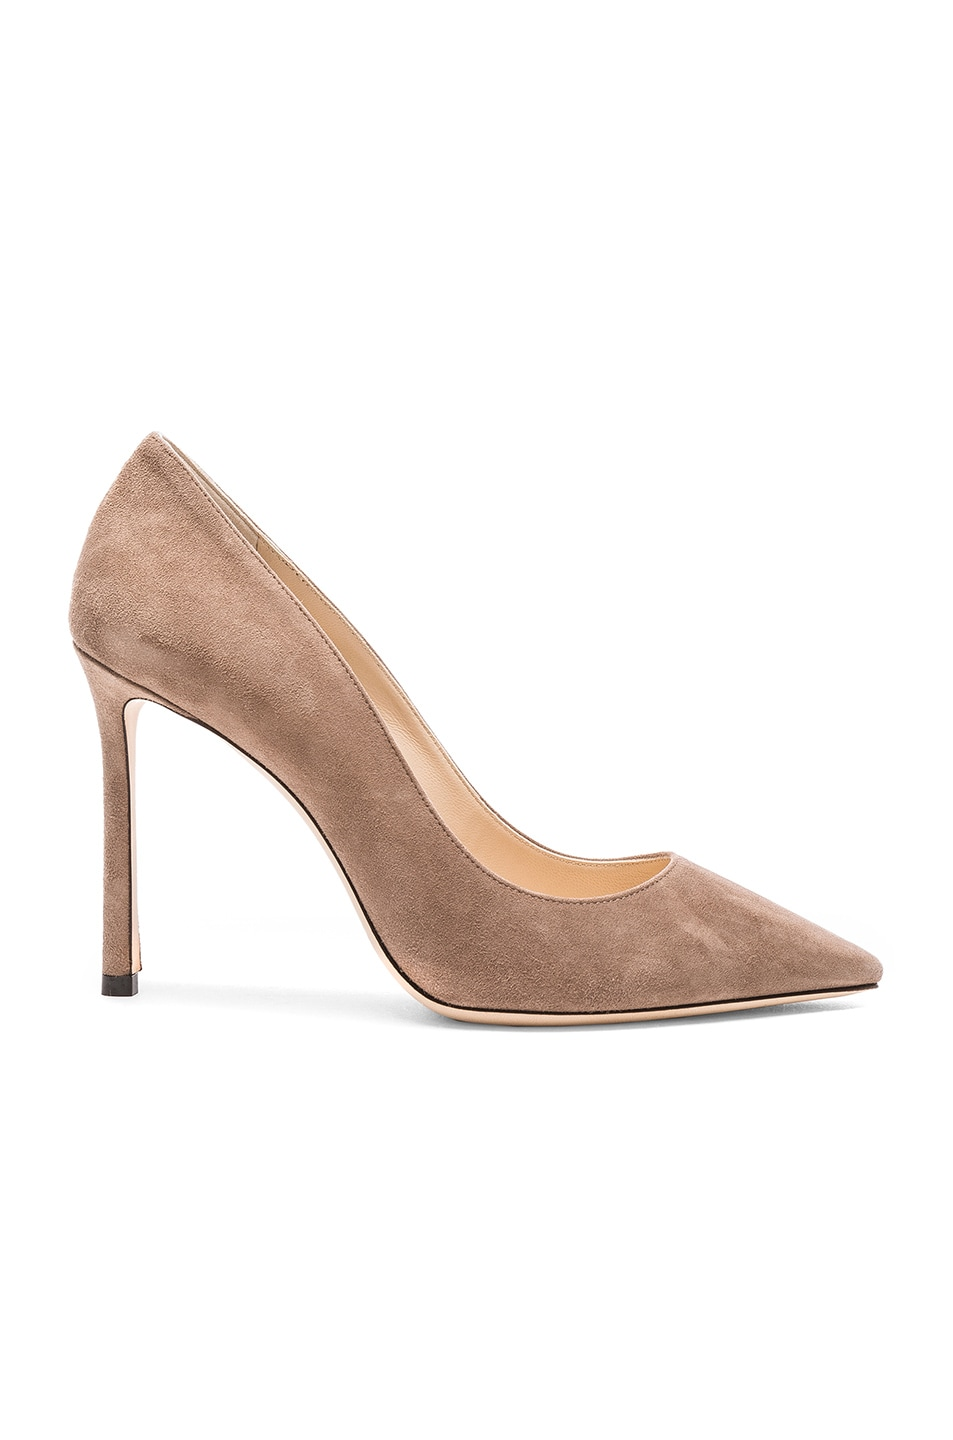 Image 1 of Jimmy Choo Suede Romy Heels in Light Mocha